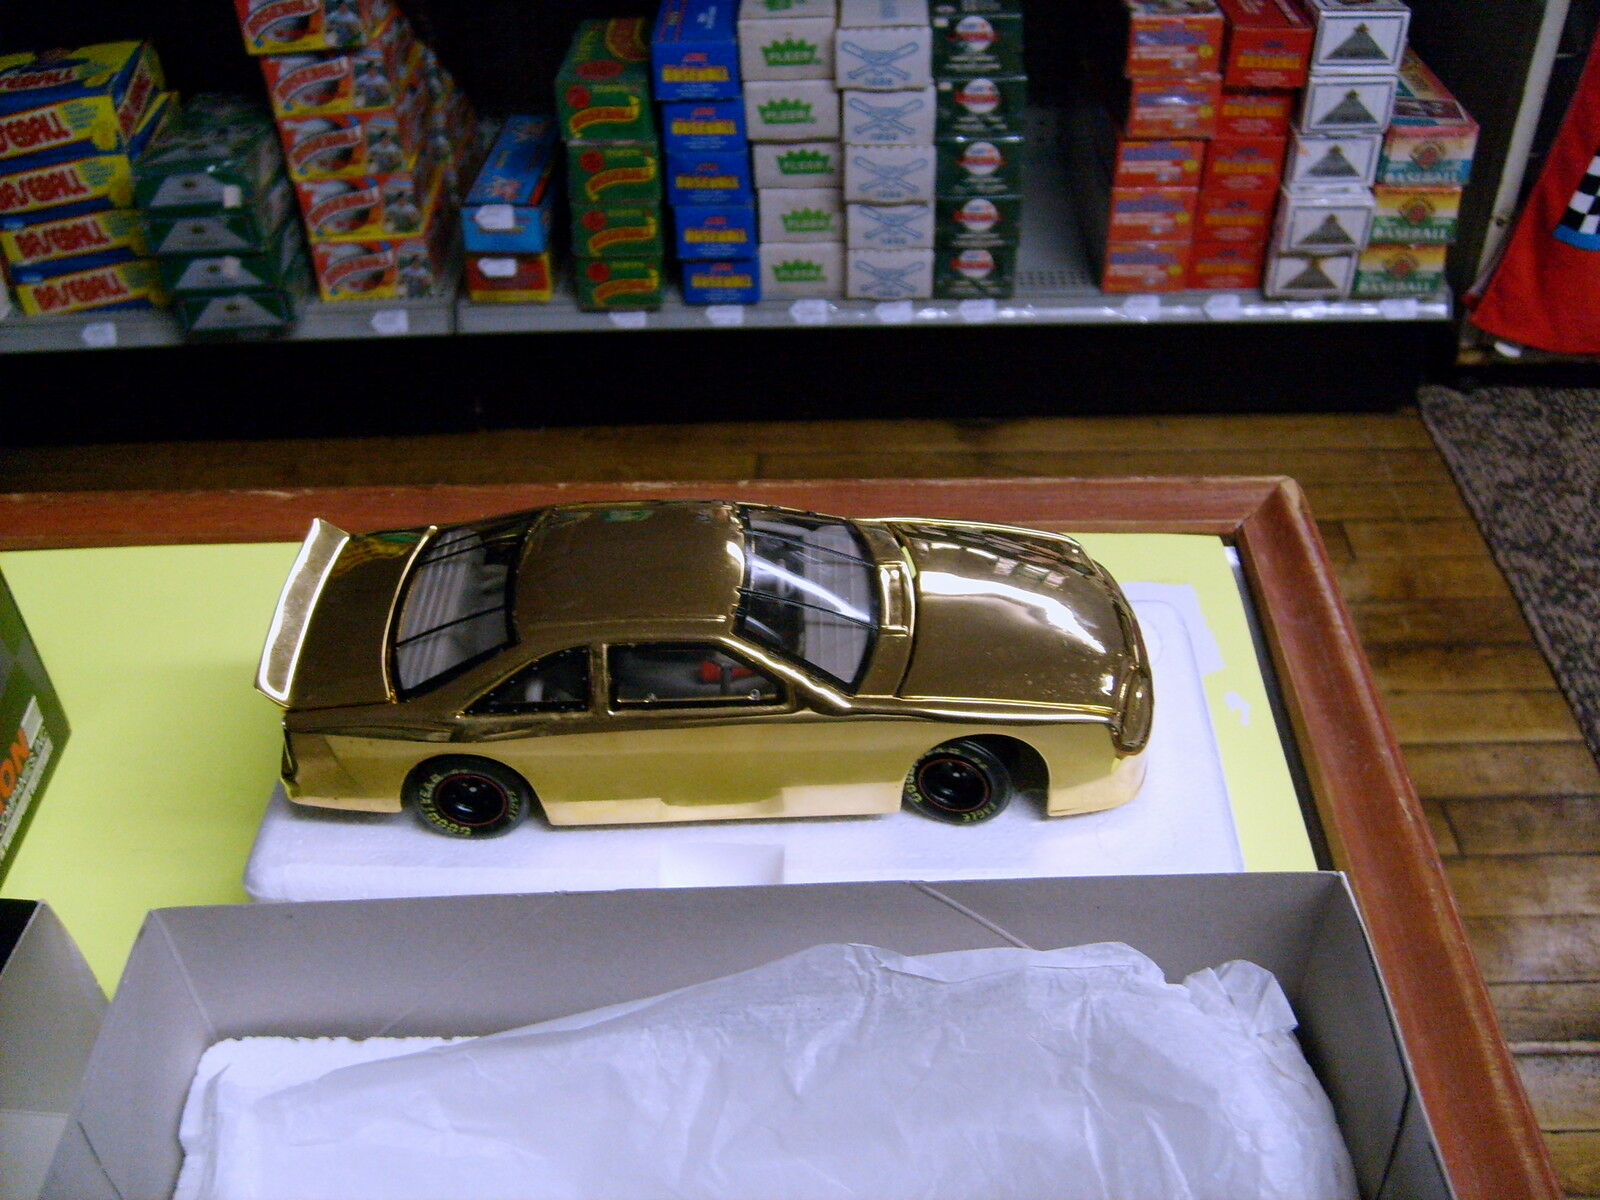 1997 1997 1997 ACTION PERFORMANCE HEADQUARTERS GRAND OPENING 1 24 gold CAR HARD TO LOCATE 12d1c4